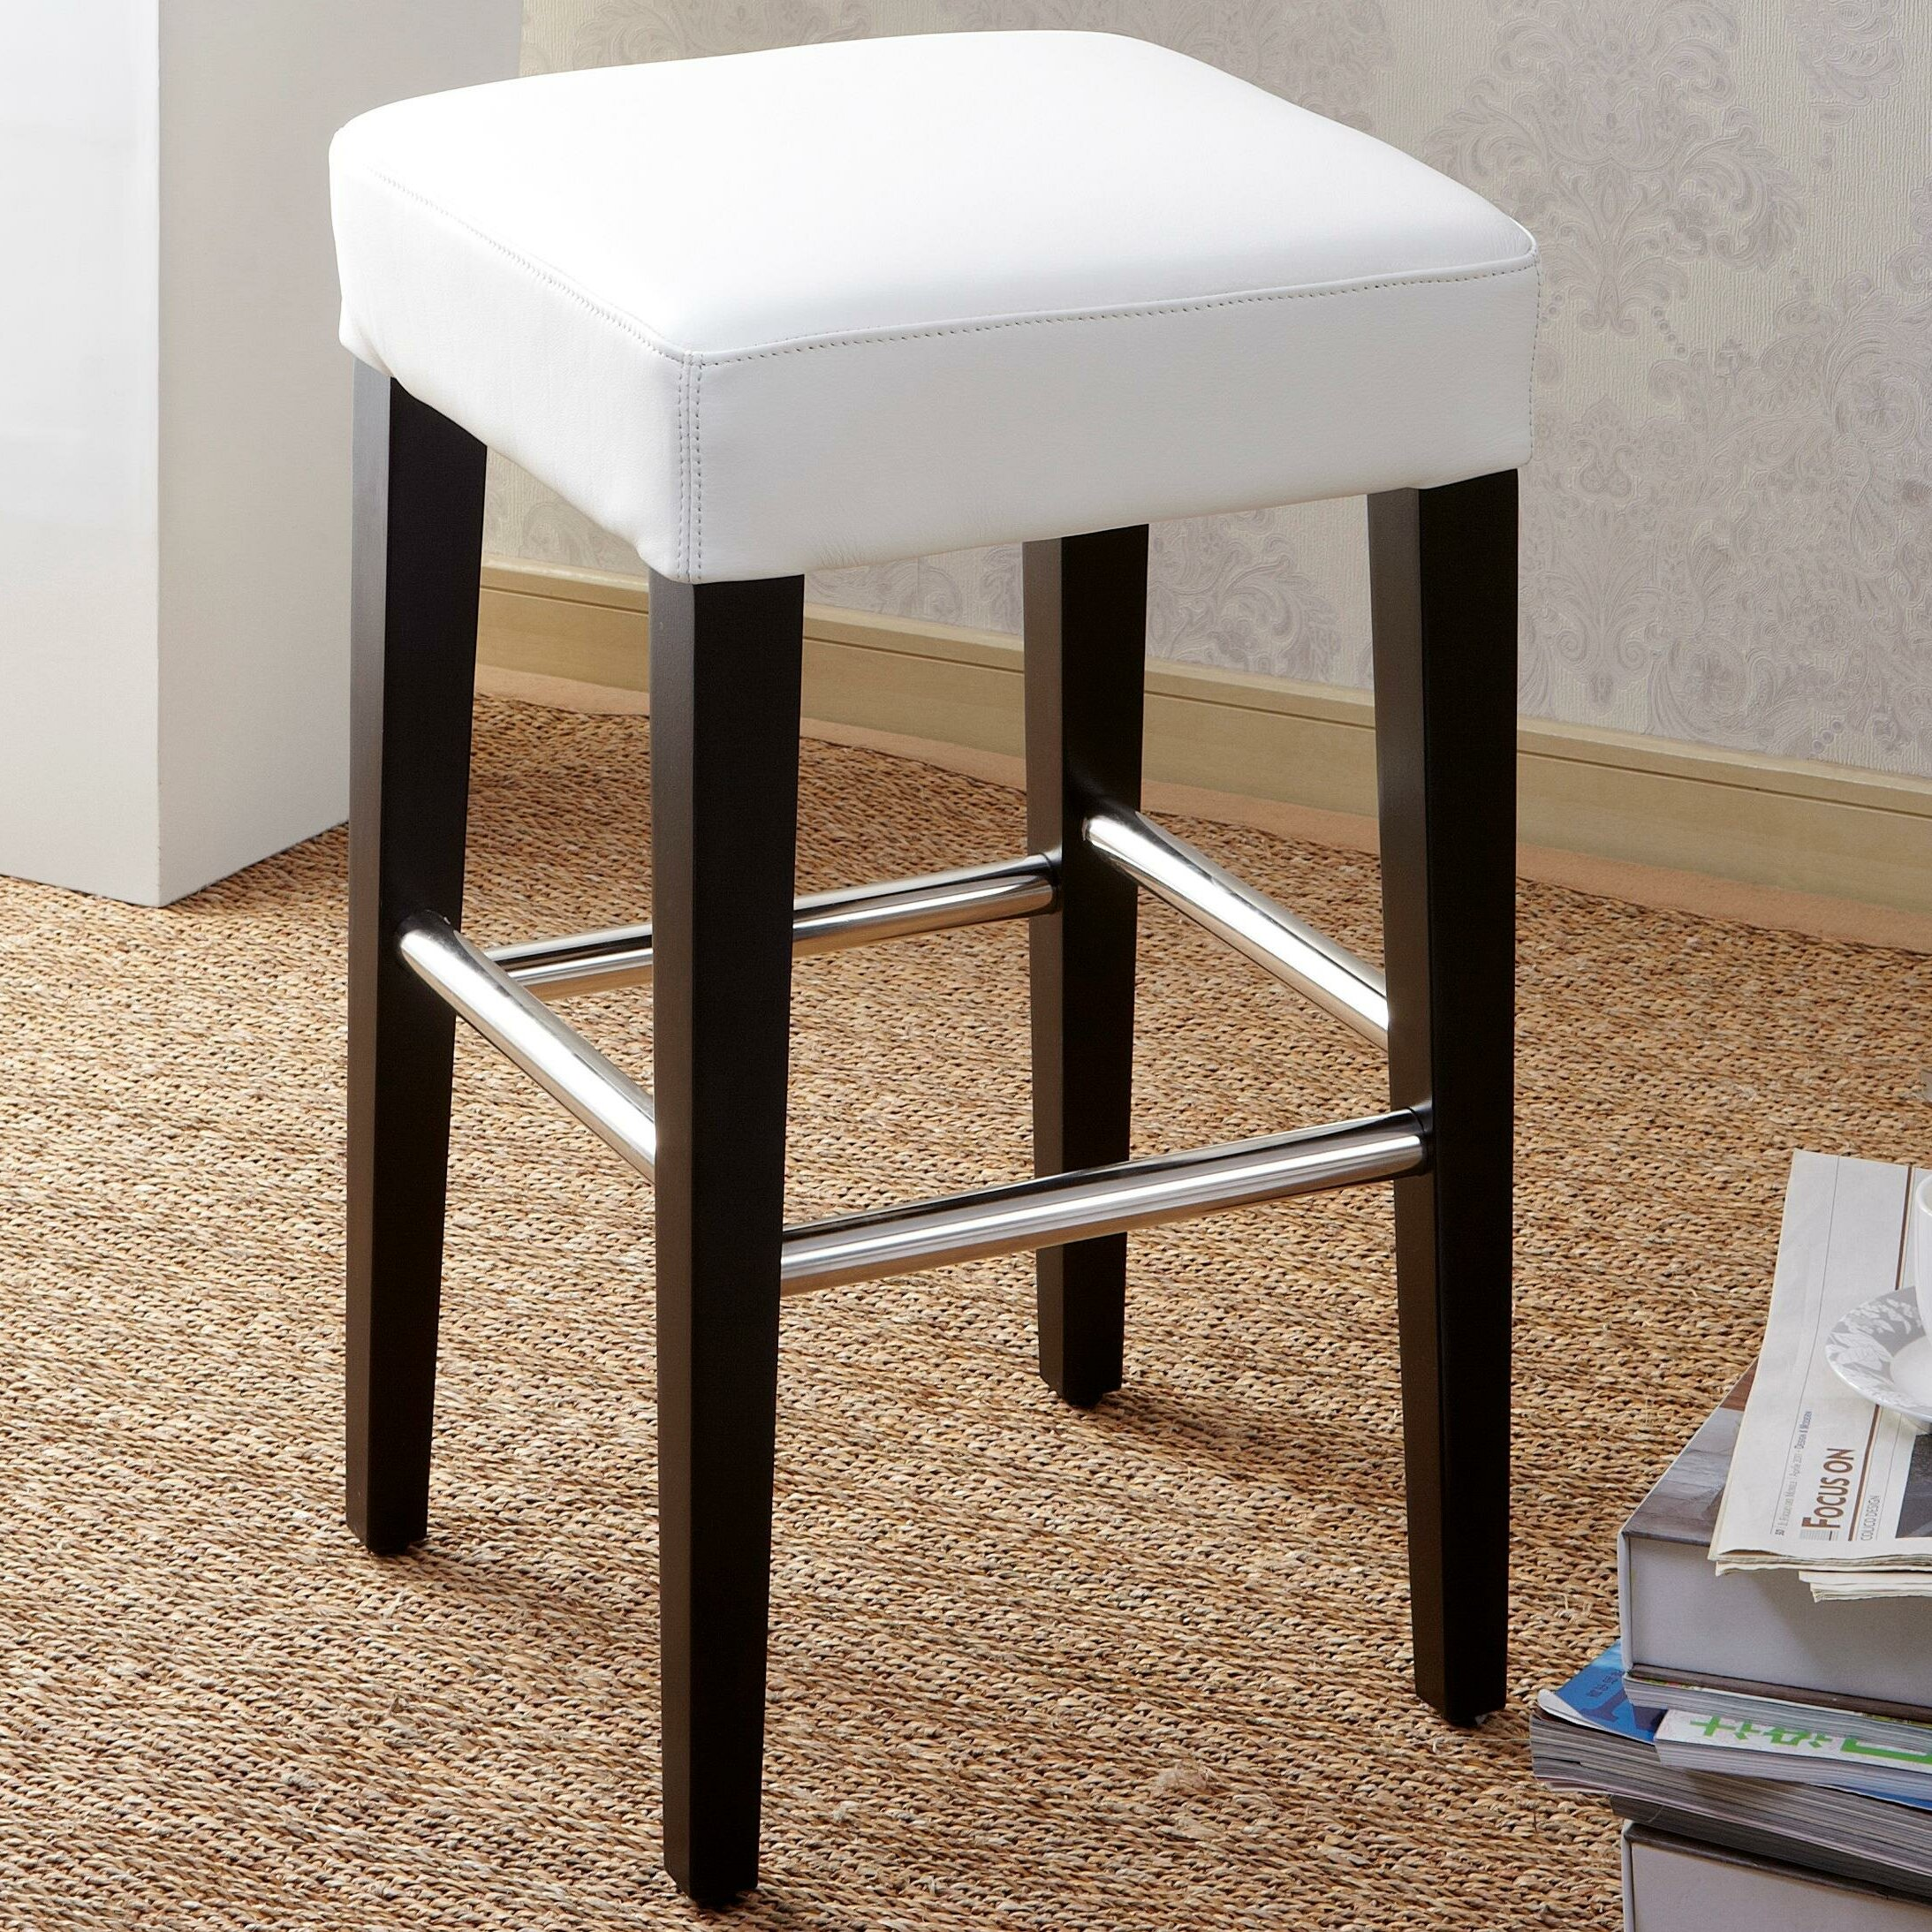 image quarter bamboo bathroom stool cortesi home ampquot  cortesi home  bar stool cortesi home ampquot